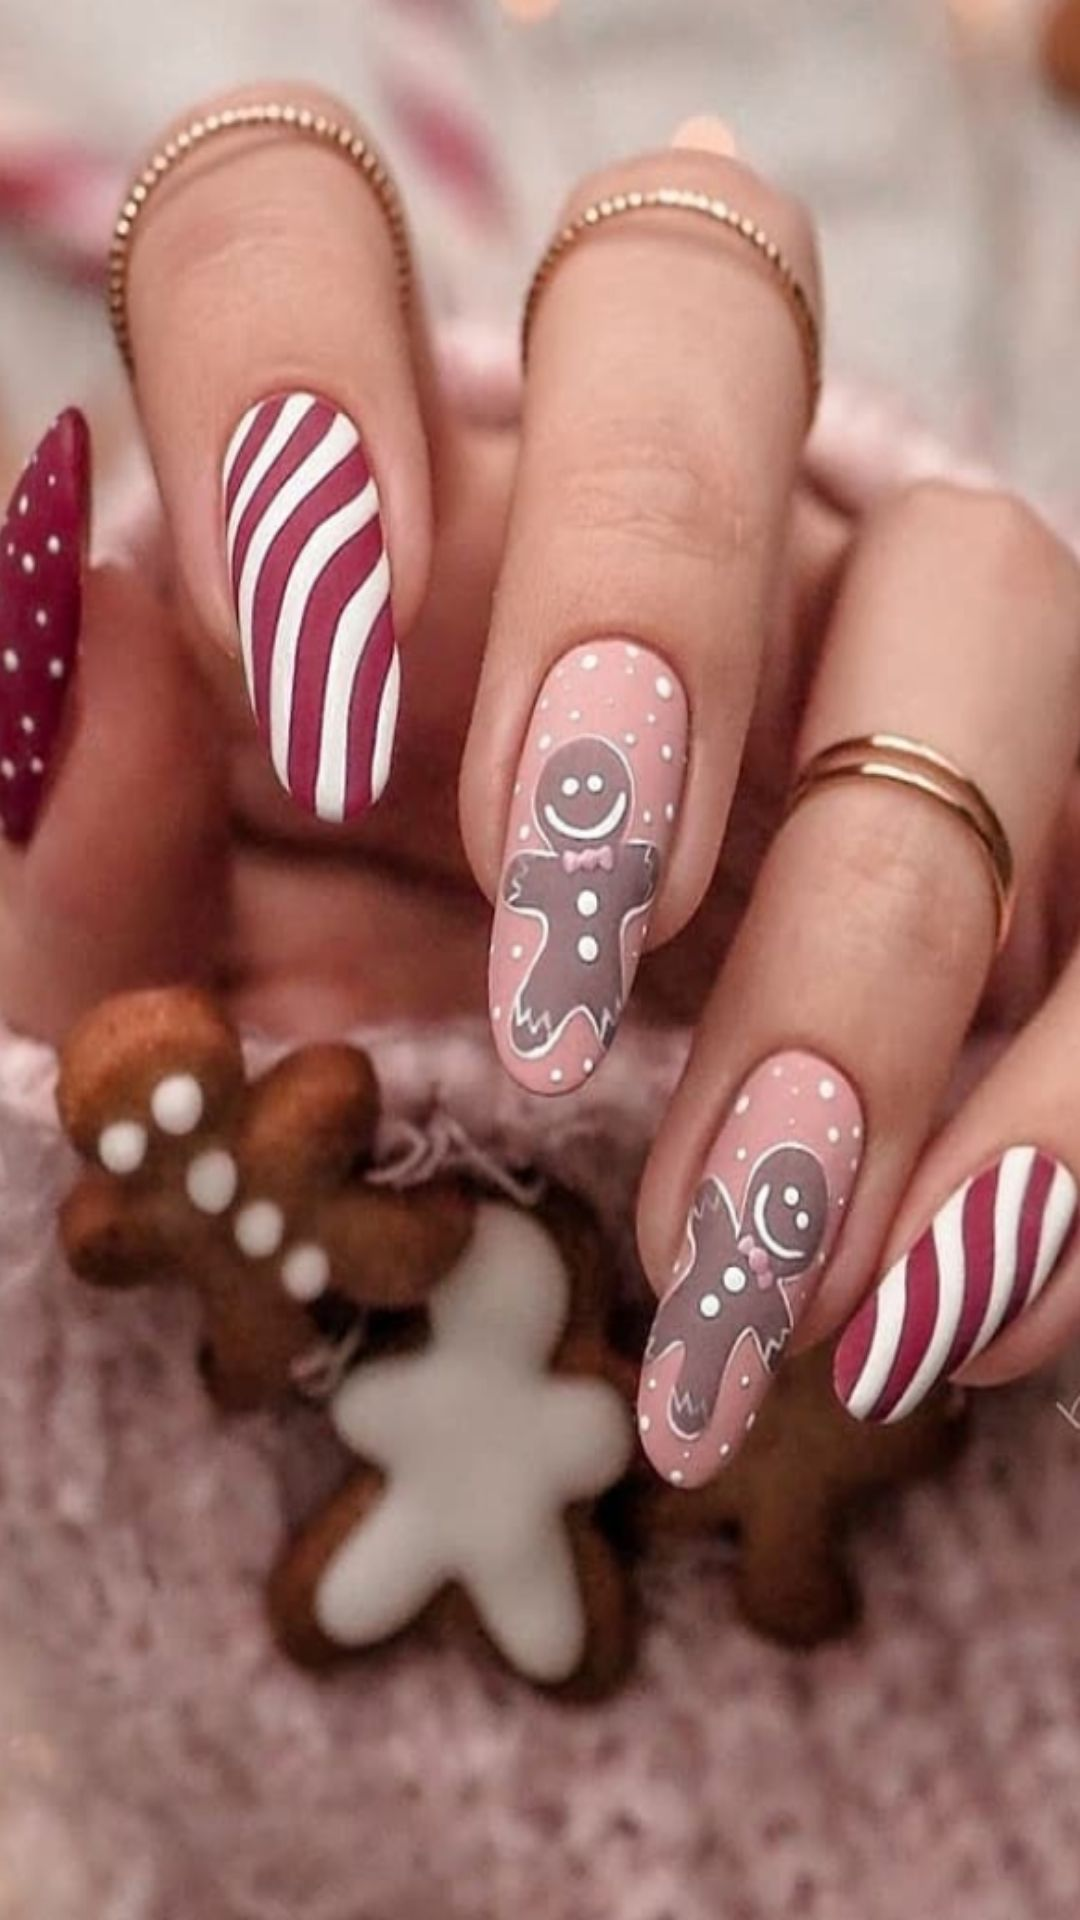 30 Best Christmas nails 2021 That You Can Do at Home